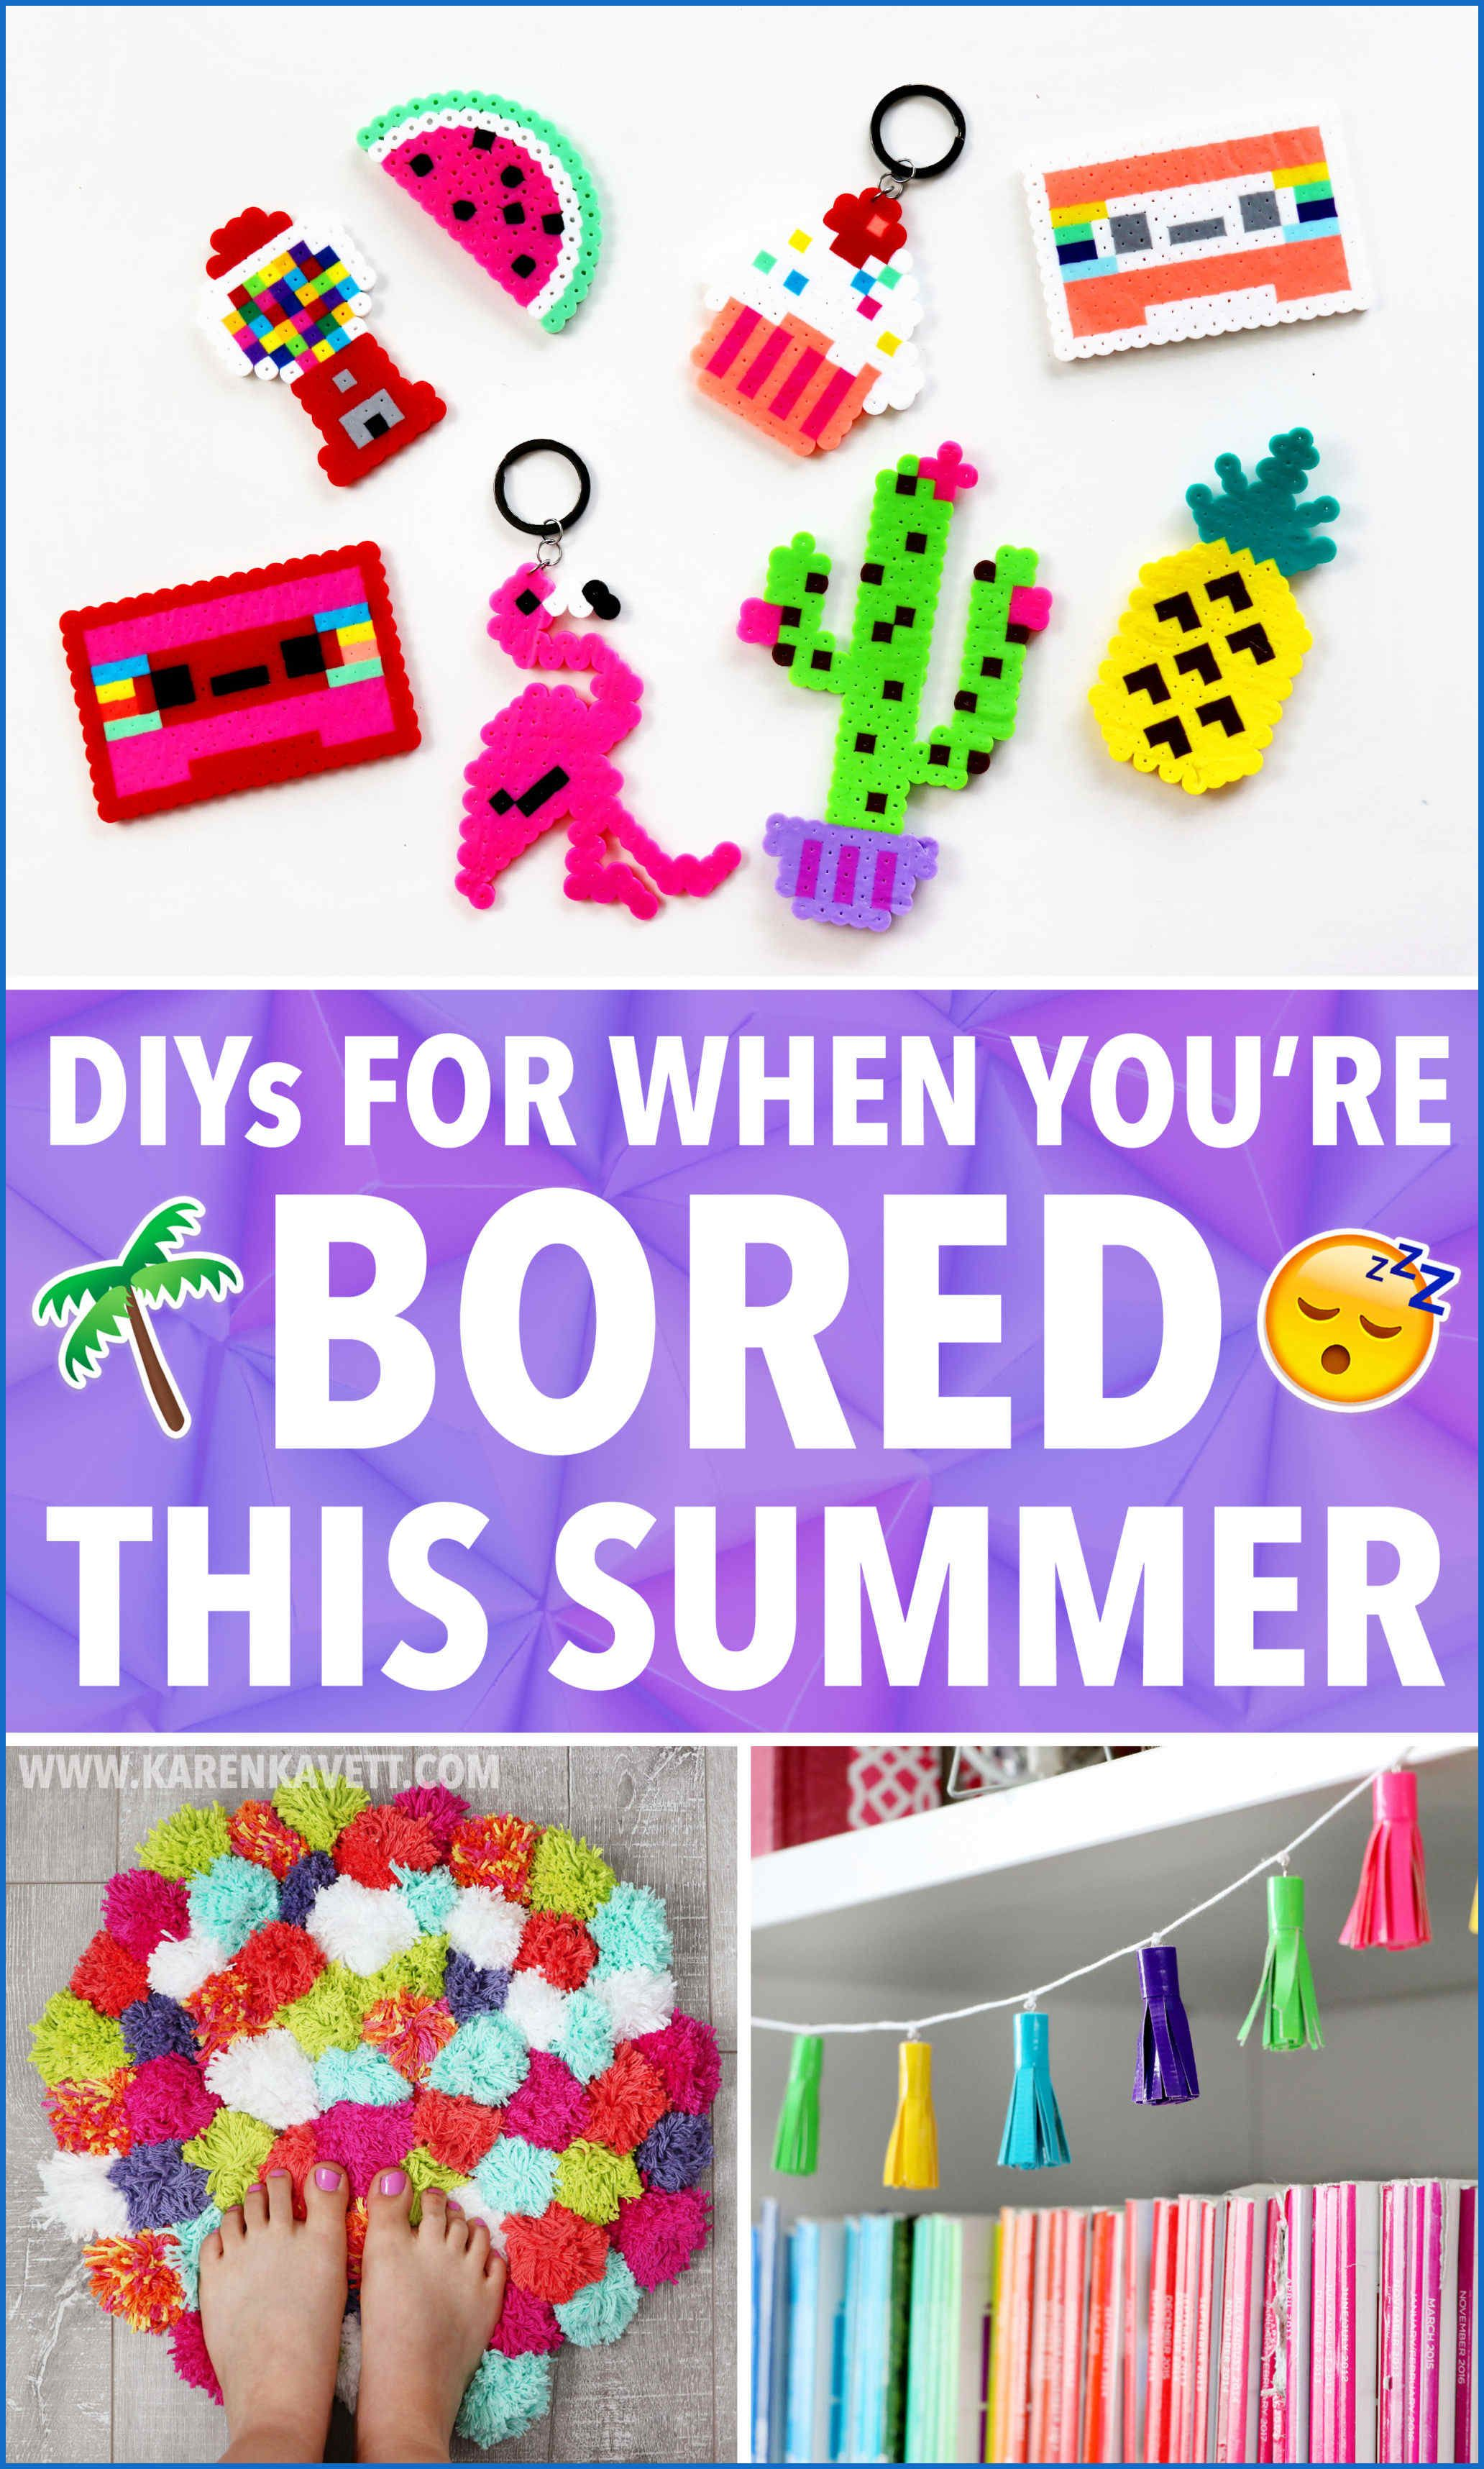 Easy Diy Ideas For When You Re Bored